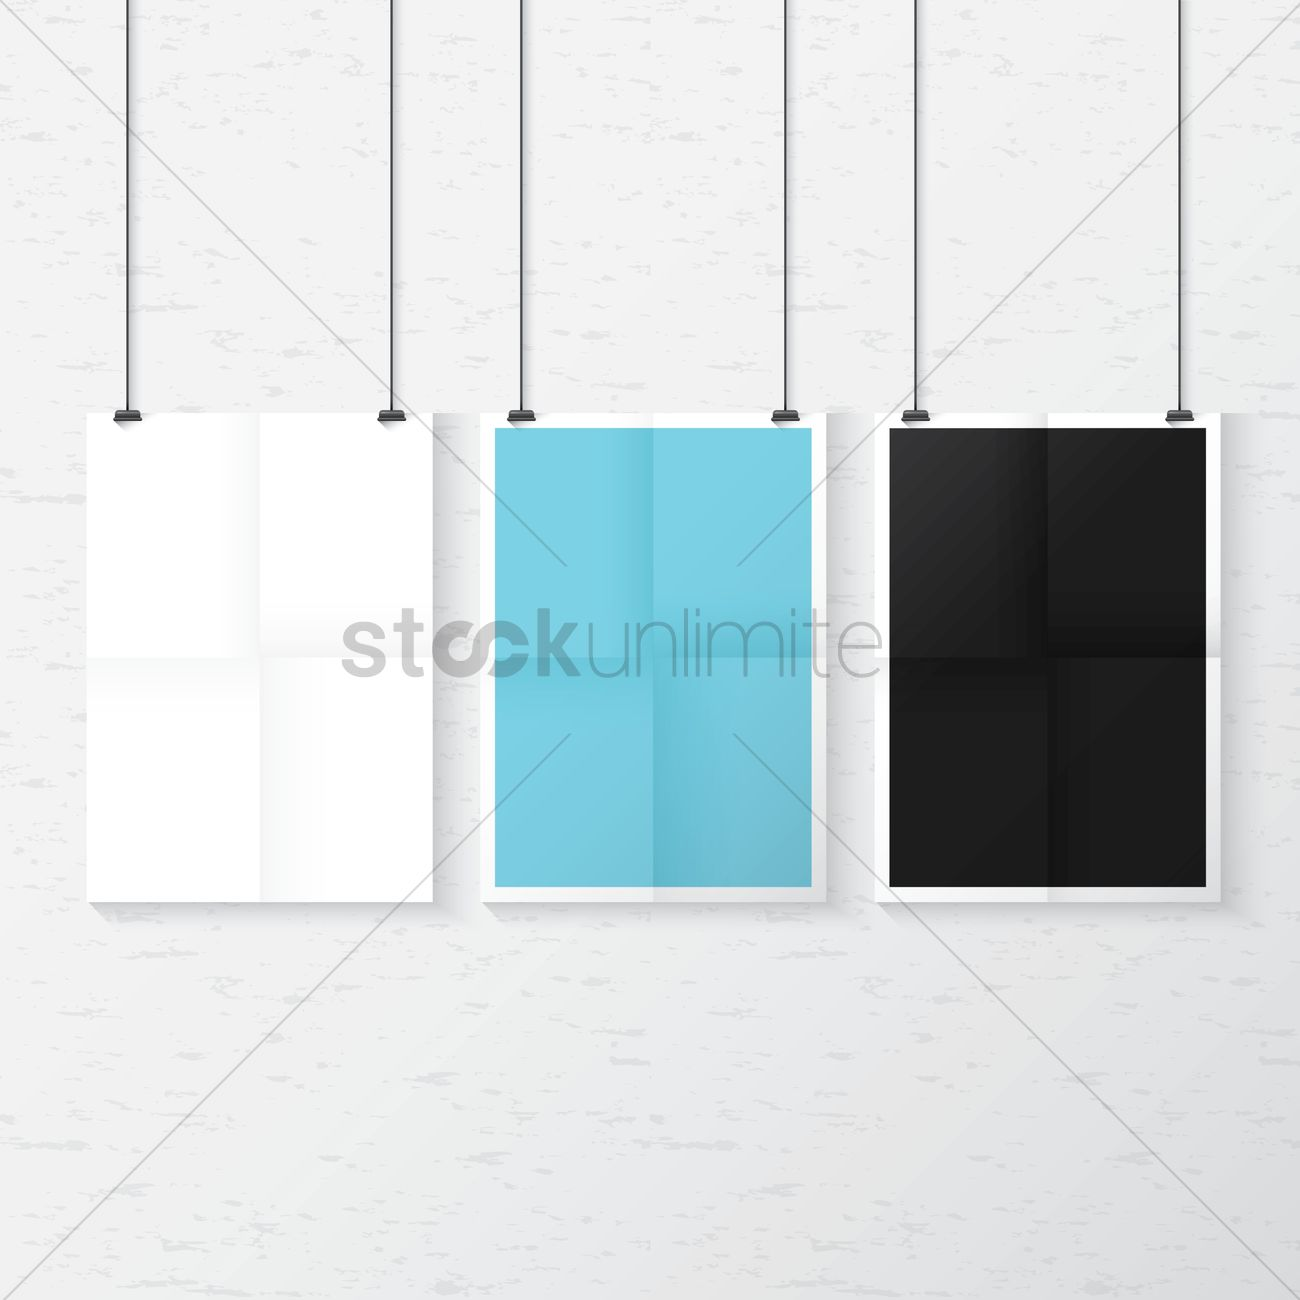 Hanging Posters 6 Great Posters For Hanging On Walls Of